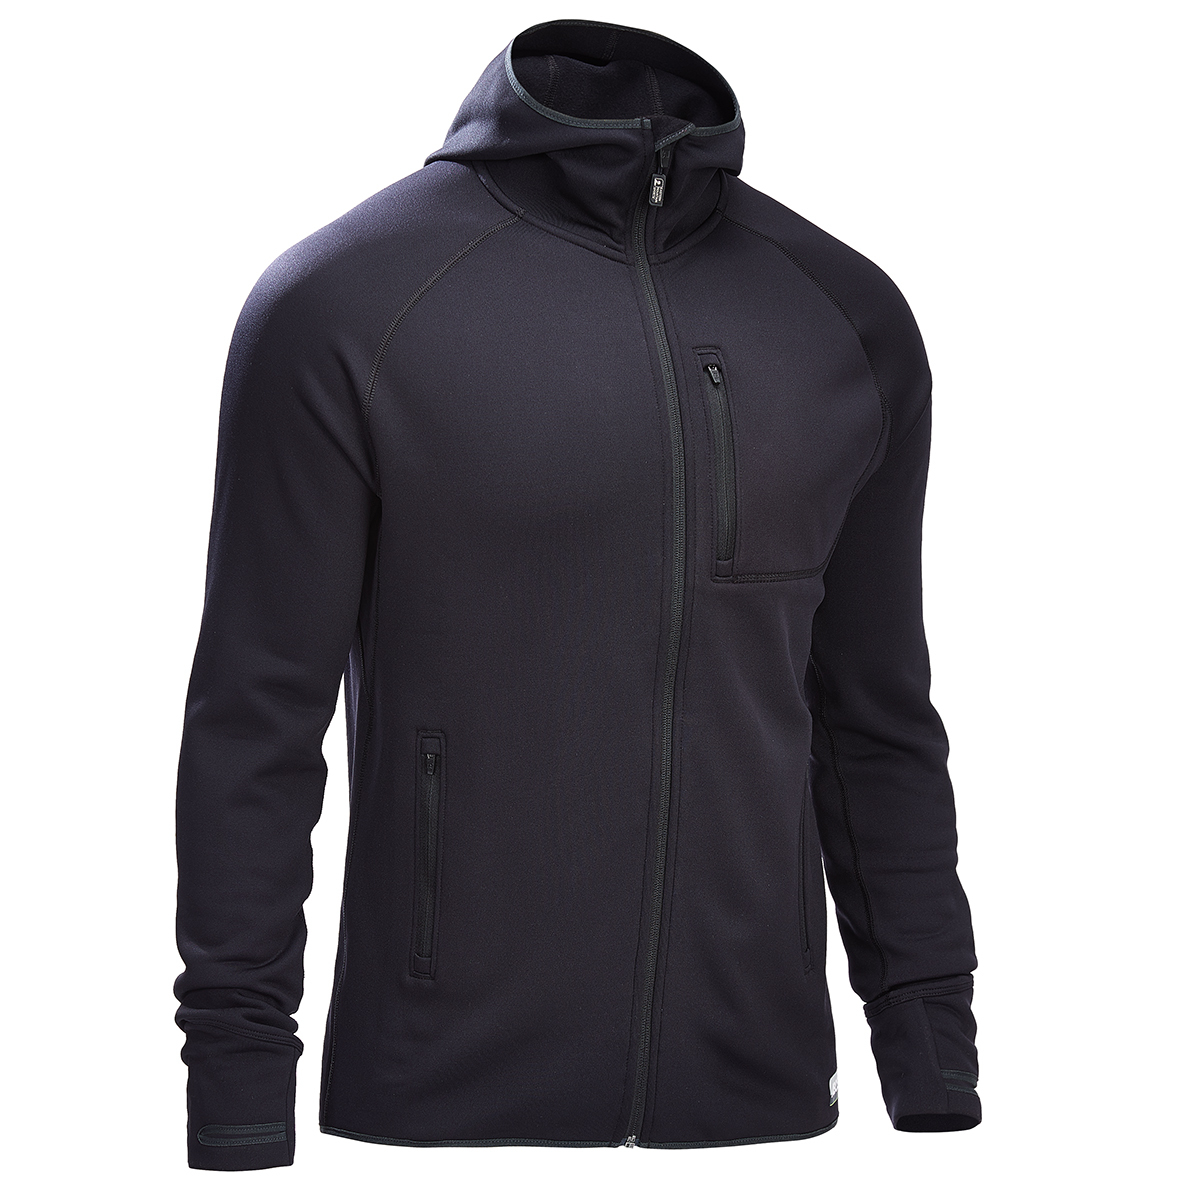 Ems Men's Equinox Power Stretch Hoodie - Black, XL